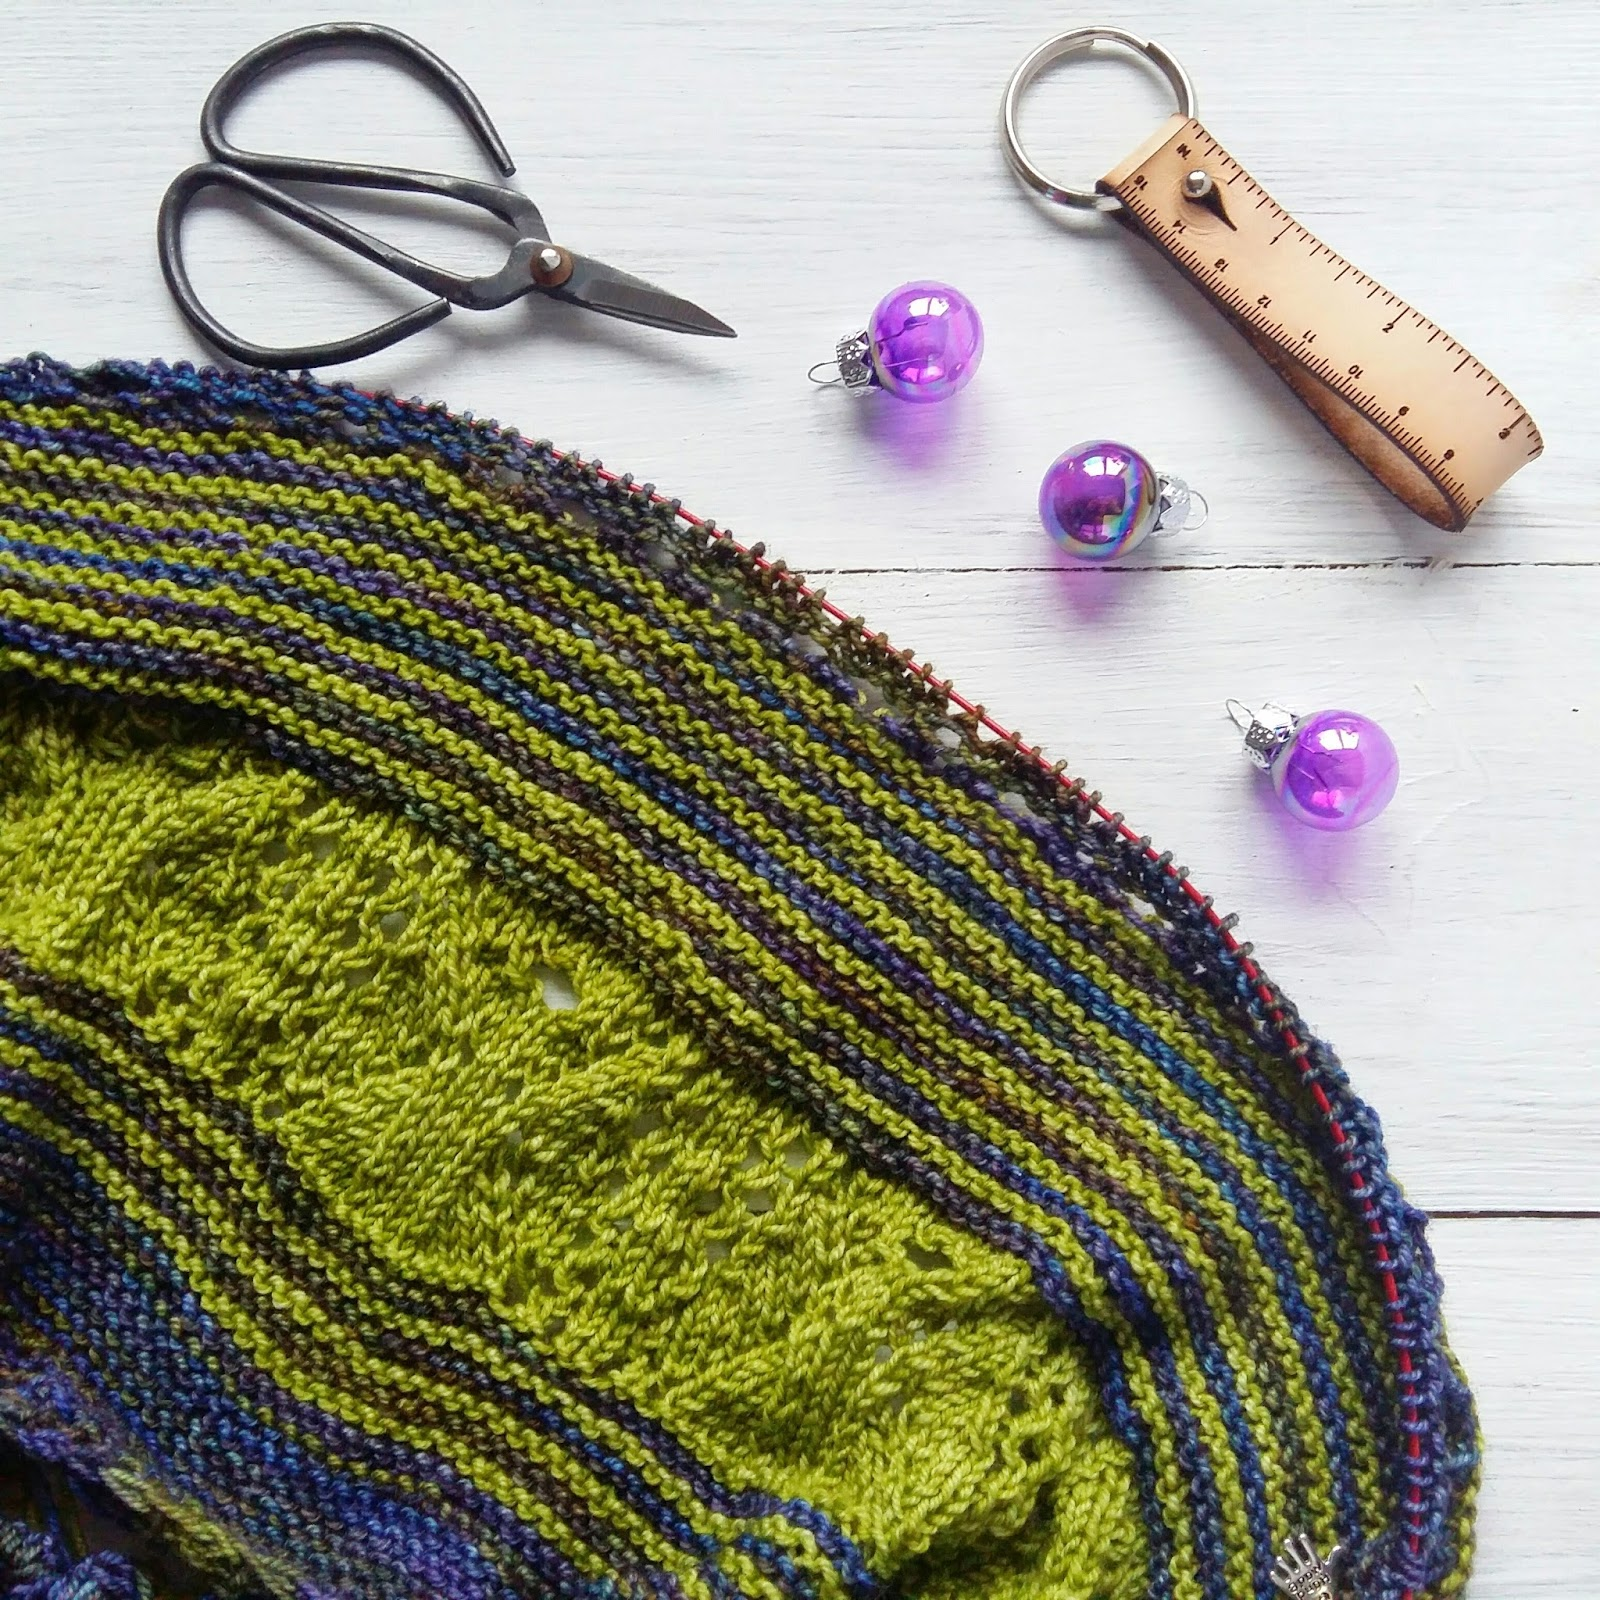 Knitting Needles Zurich Airport : Confessions of a yarnaddict knitting as fast i can